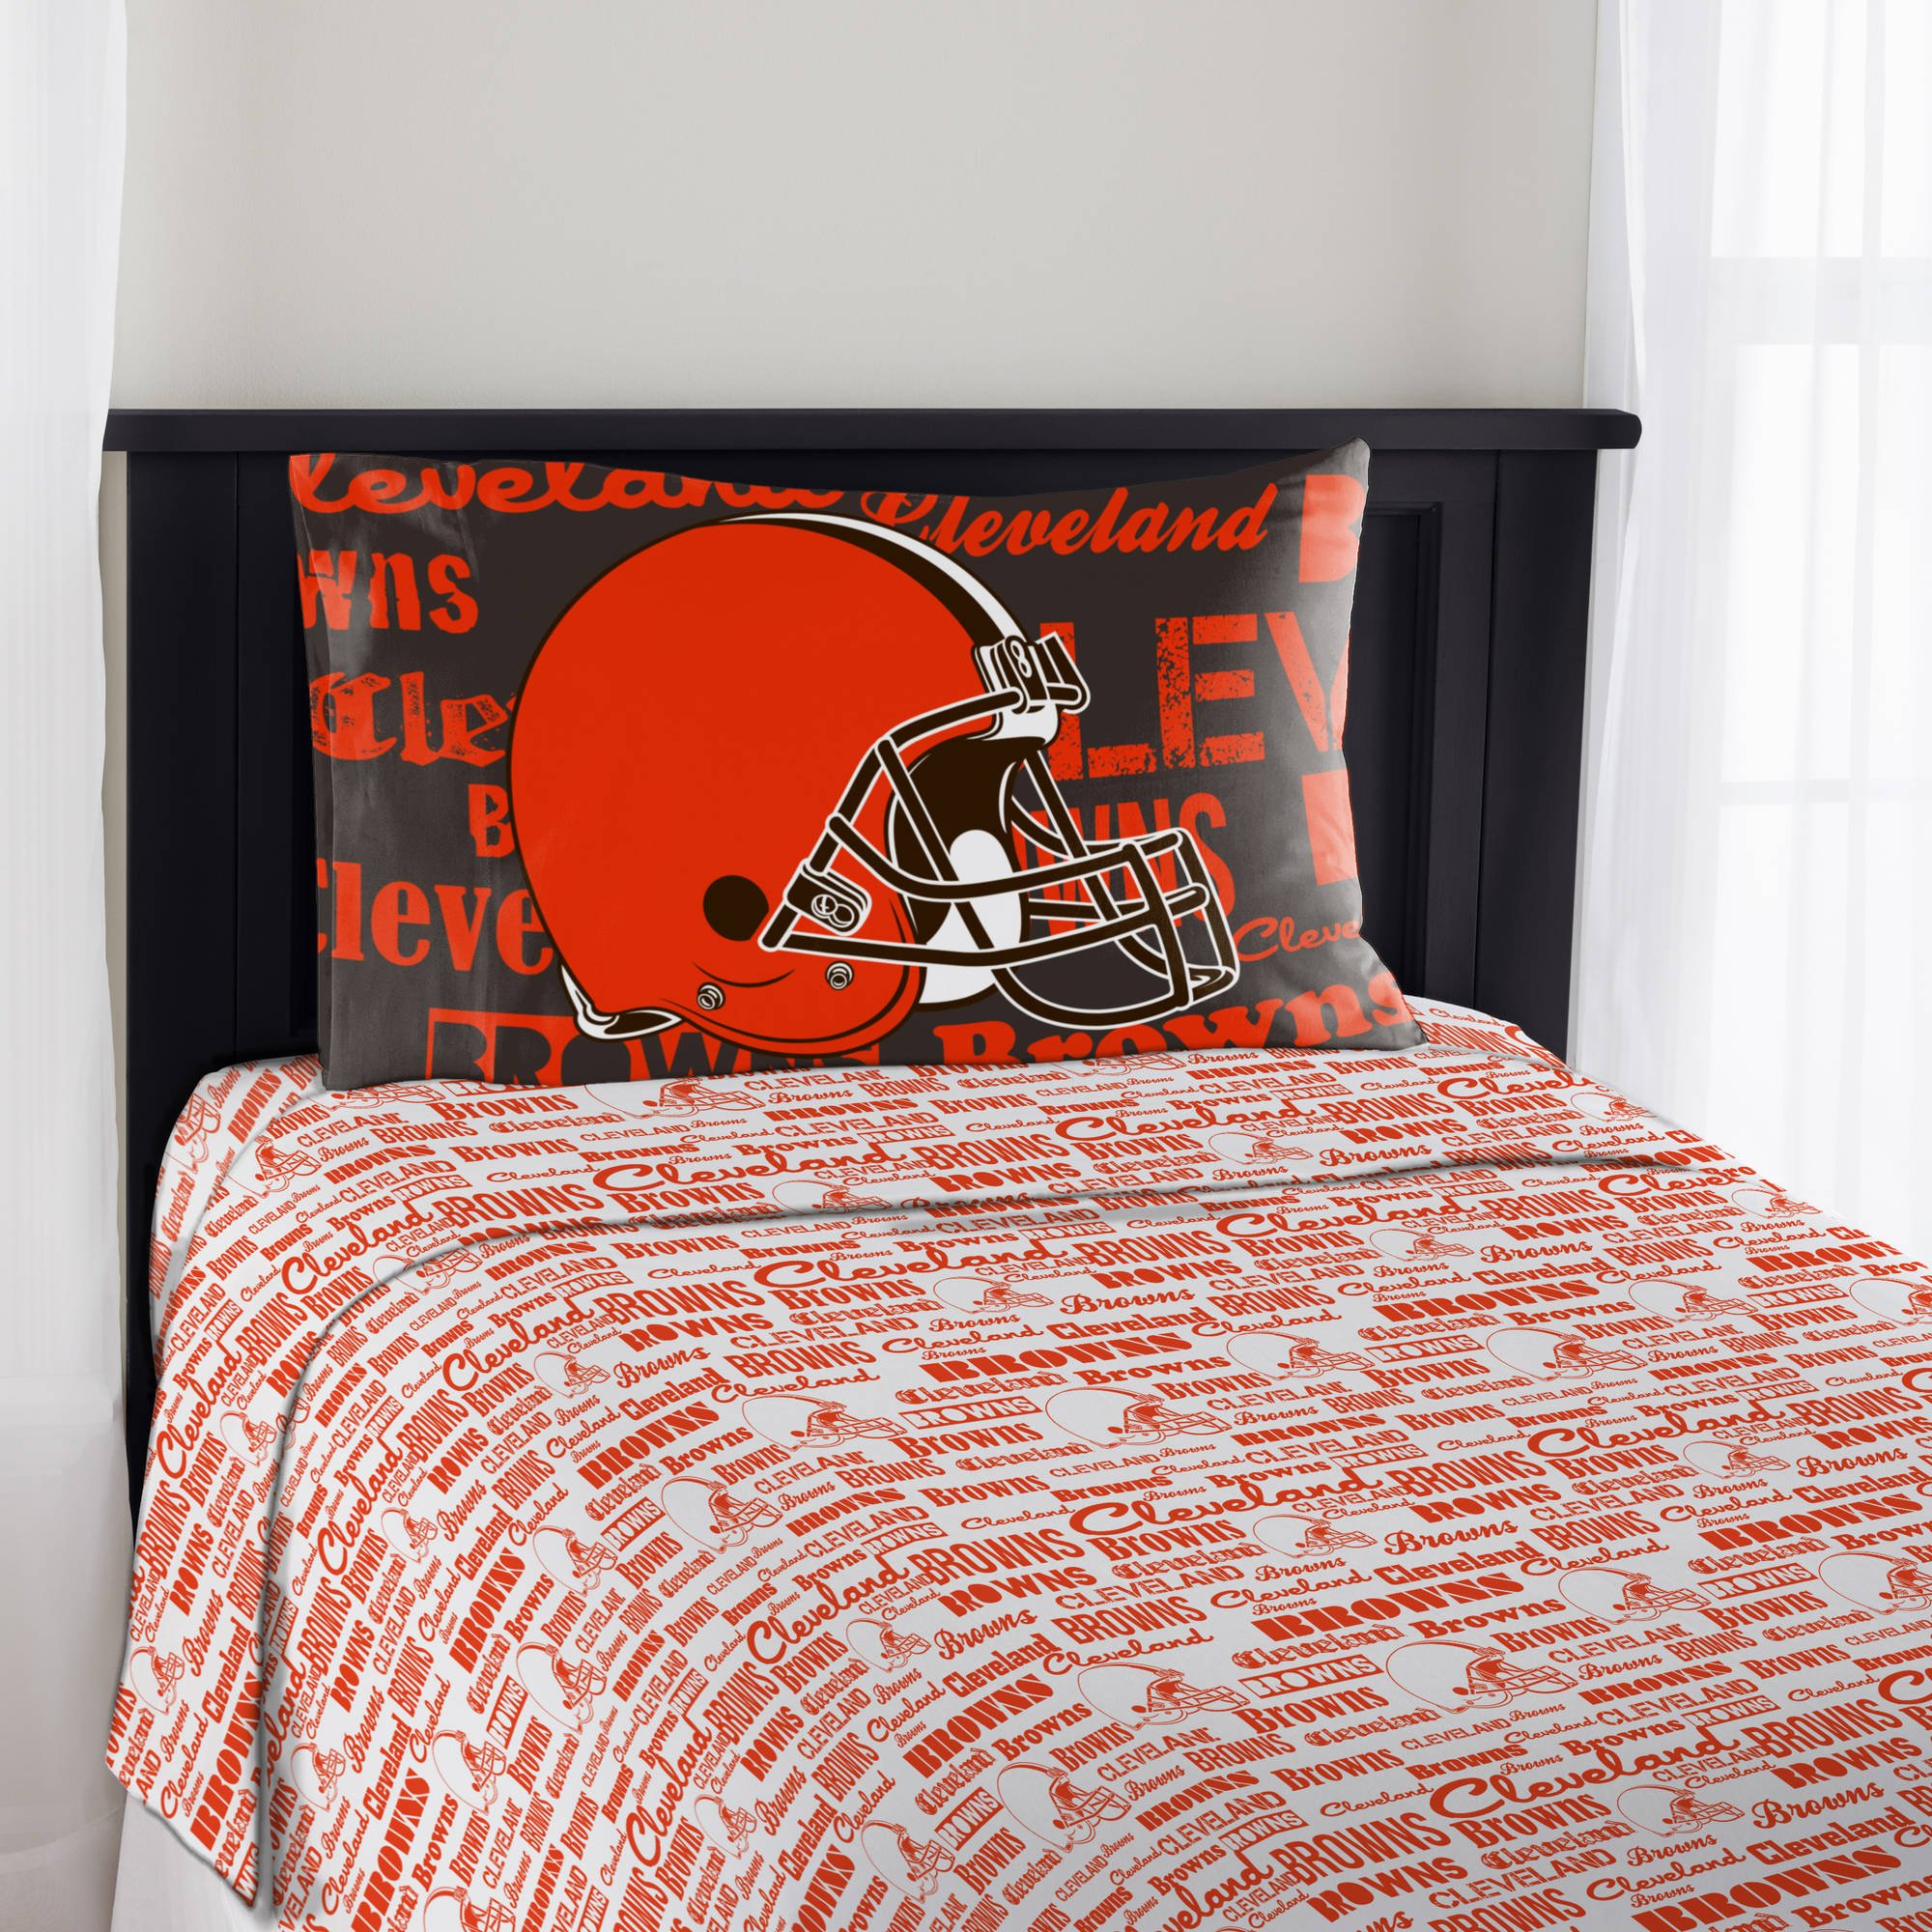 Northwest NFL Anthem Cleveland Browns Bedding Sheet Set: Full by Northwest